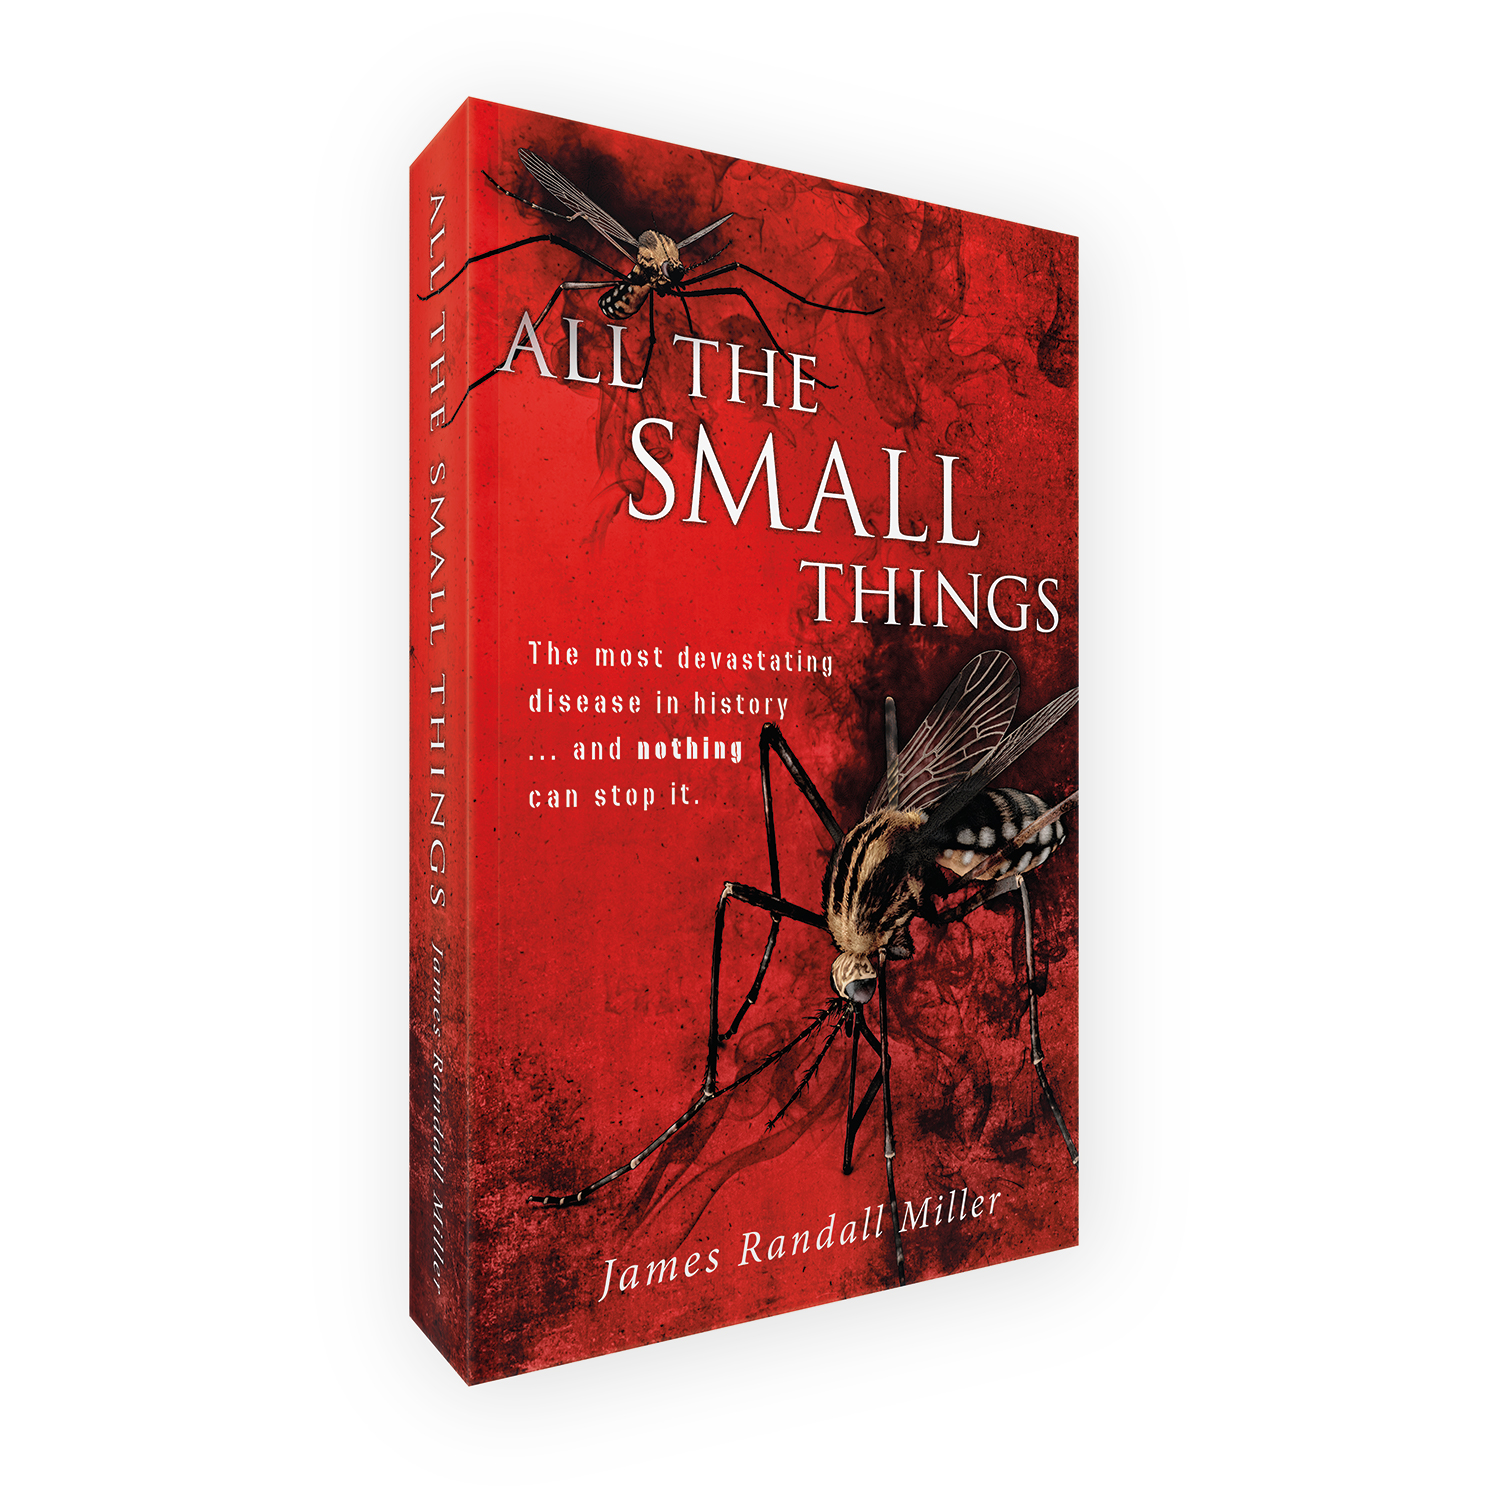 'All The Small Things' is a bespoke cover design for a modern viral thriller novel. The book cover was designed by Mark Thomas, of coverness.com. To find out more about my book design services, please visit www.coverness.com.